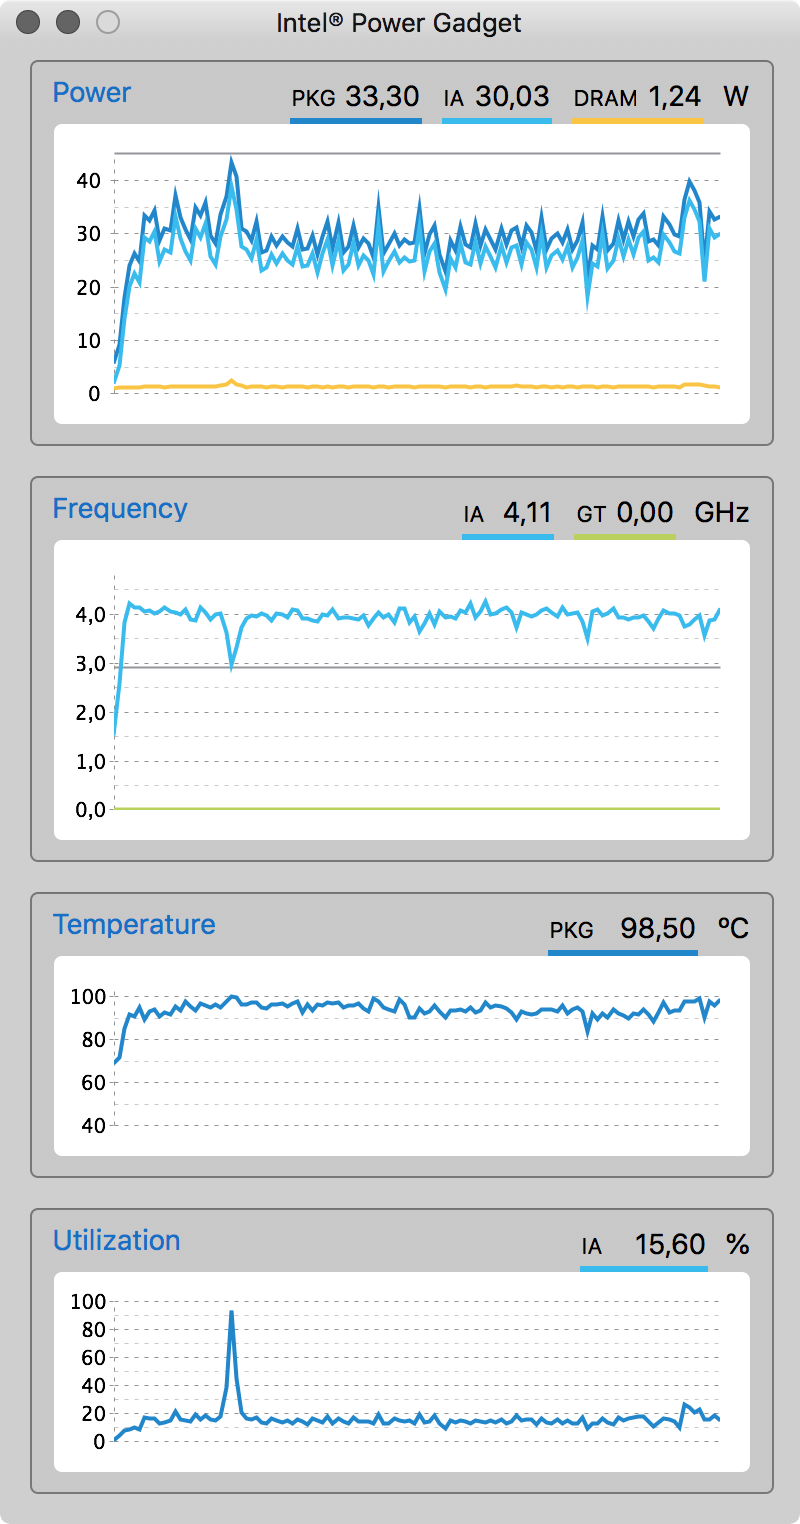 Intel Power Gadget screenshot showing CPU frequency and utilization during a build of the Swift compiler  - intel power gadget swift build mbp 2018 0min 800px - The 2018 Macbook Pro – Ole Begemann